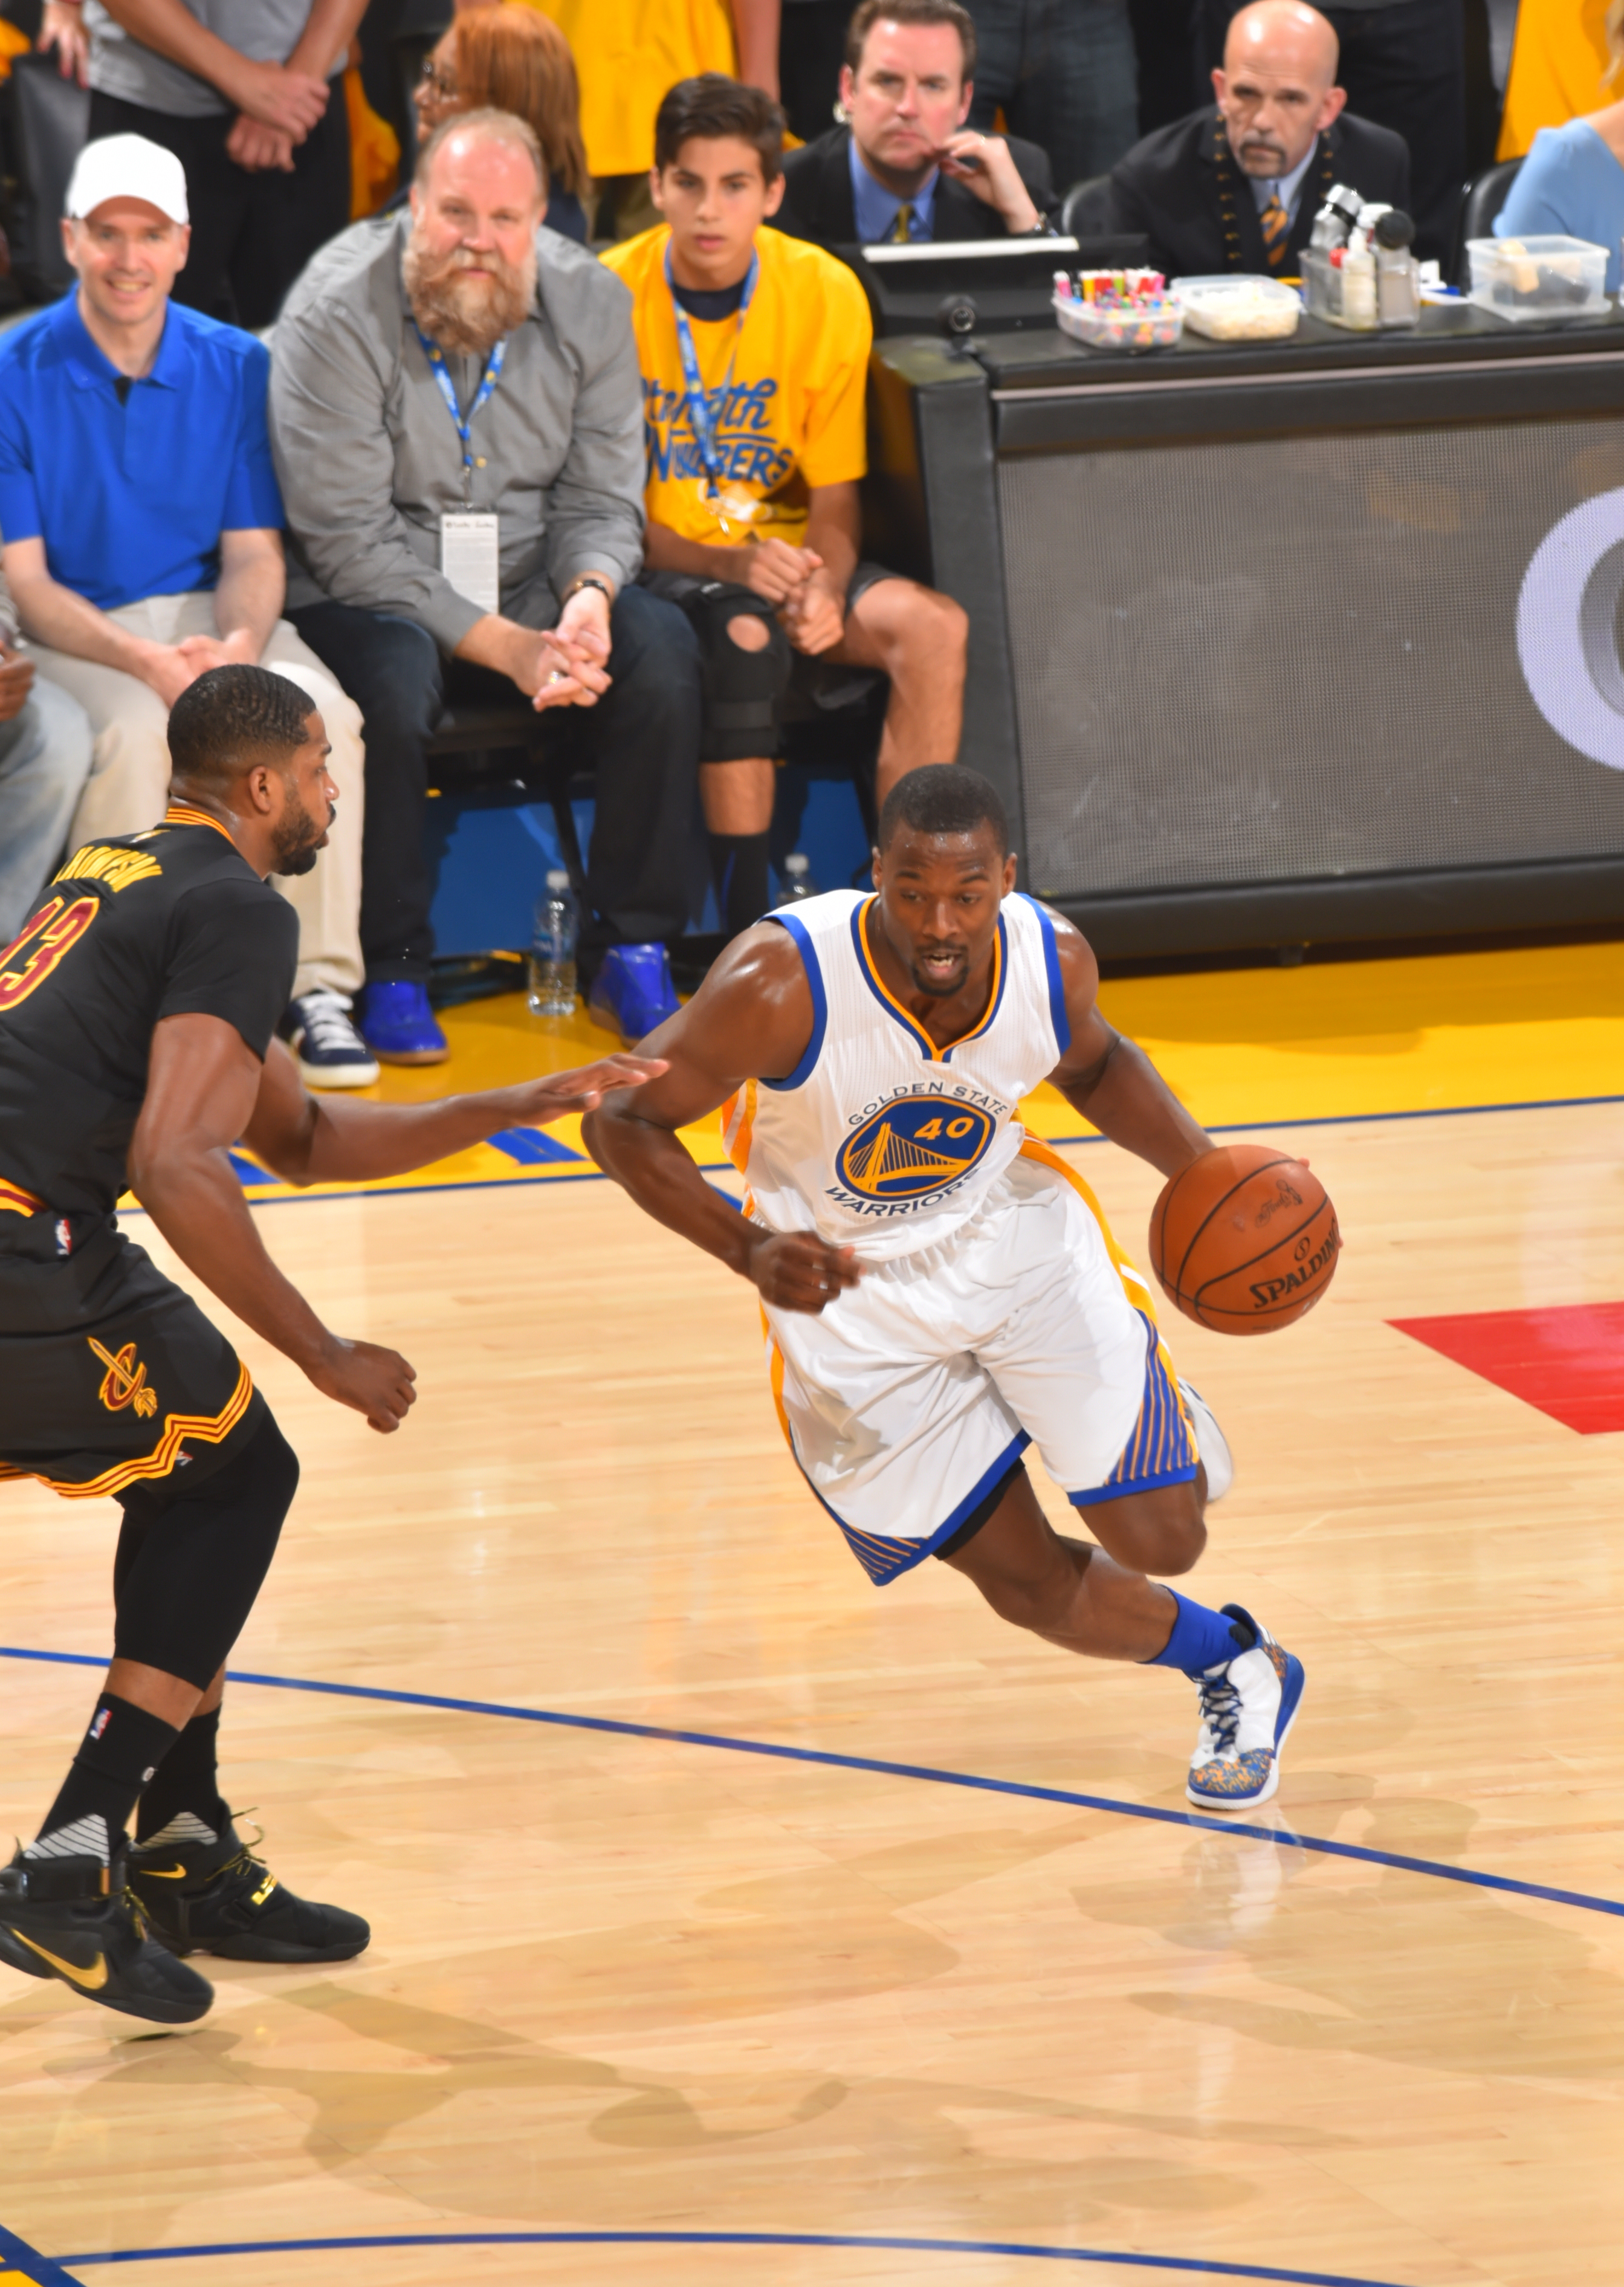 OAKLAND, CA - JUNE 19:  Harrison Barnes #40 of the Golden State Warriors drives to the basket against the Cleveland Cavaliers during the 2016 NBA Finals Game Seven on June 19, 2016 at ORACLE Arena in Oakland, California. (Photo by Jesse D. Garrabrant/NBAE